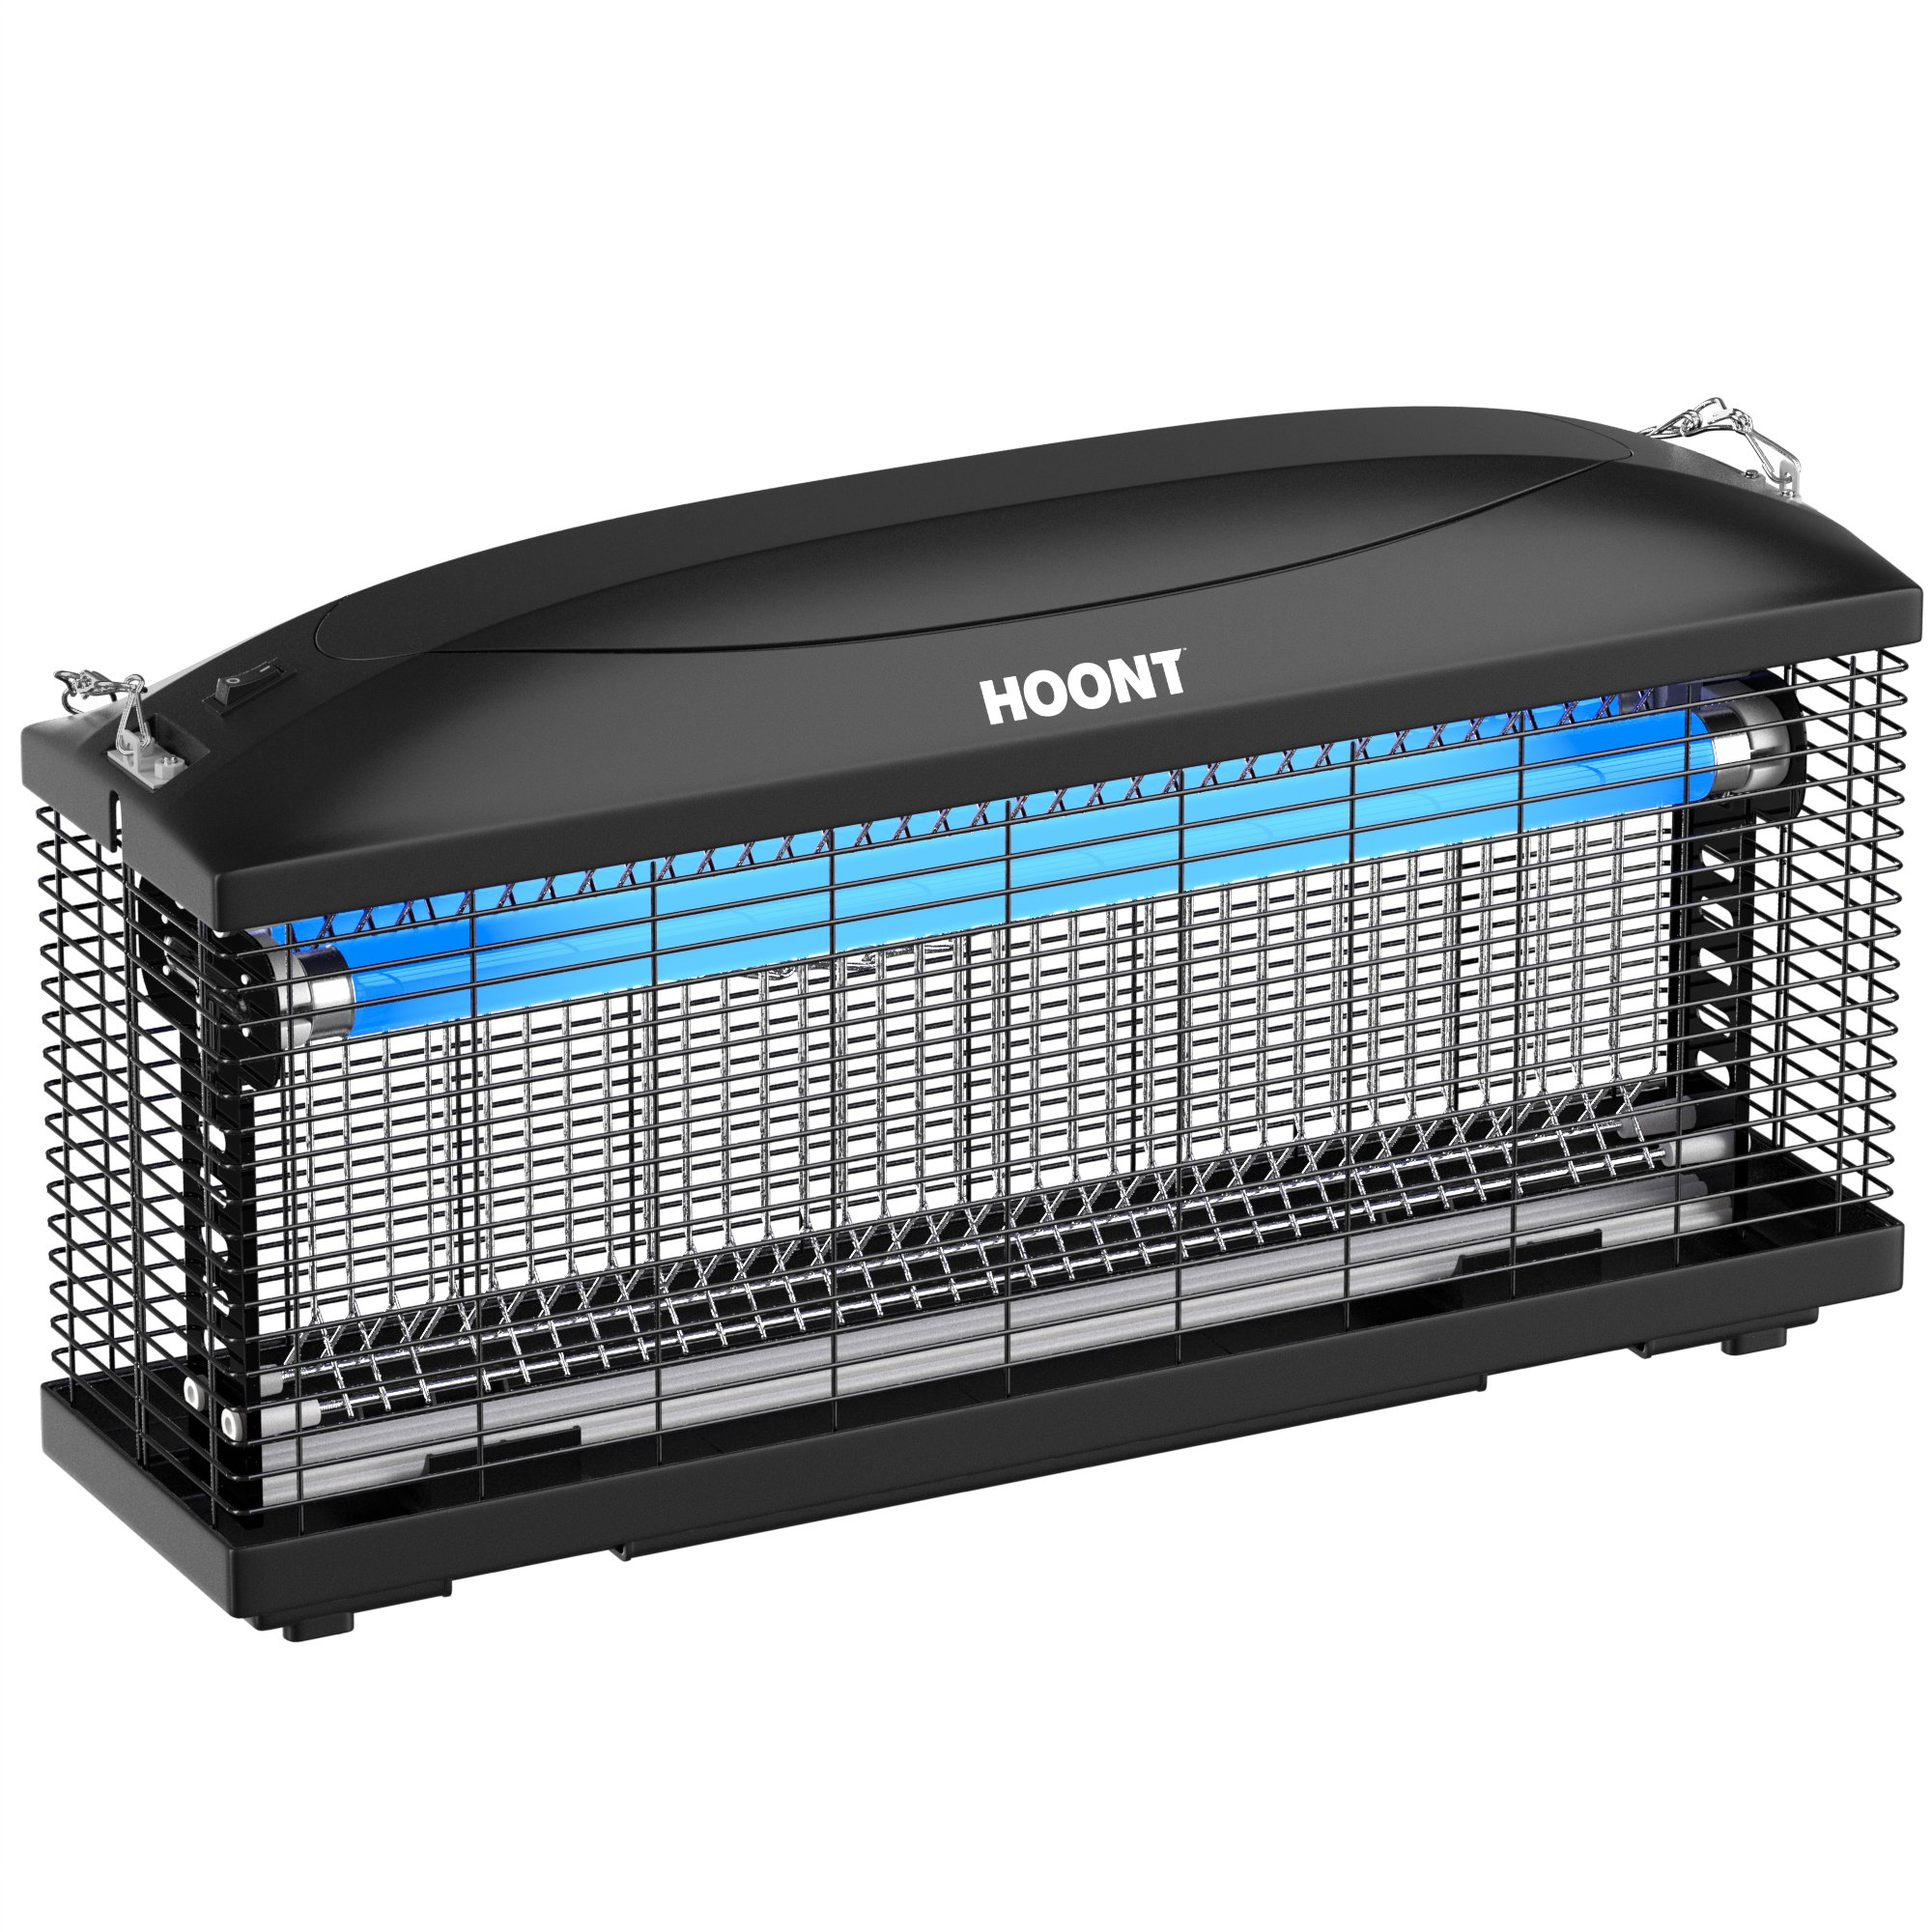 Hoont Powerful Electric Indoor Bug Zapper and Fly Zapper Catcher Killer Trap – Protects 6,000 Sq. Ft / Bug and Fly Killer, Insect Killer, Mosquito Killer – For Residential and Commercial Use by Hoont